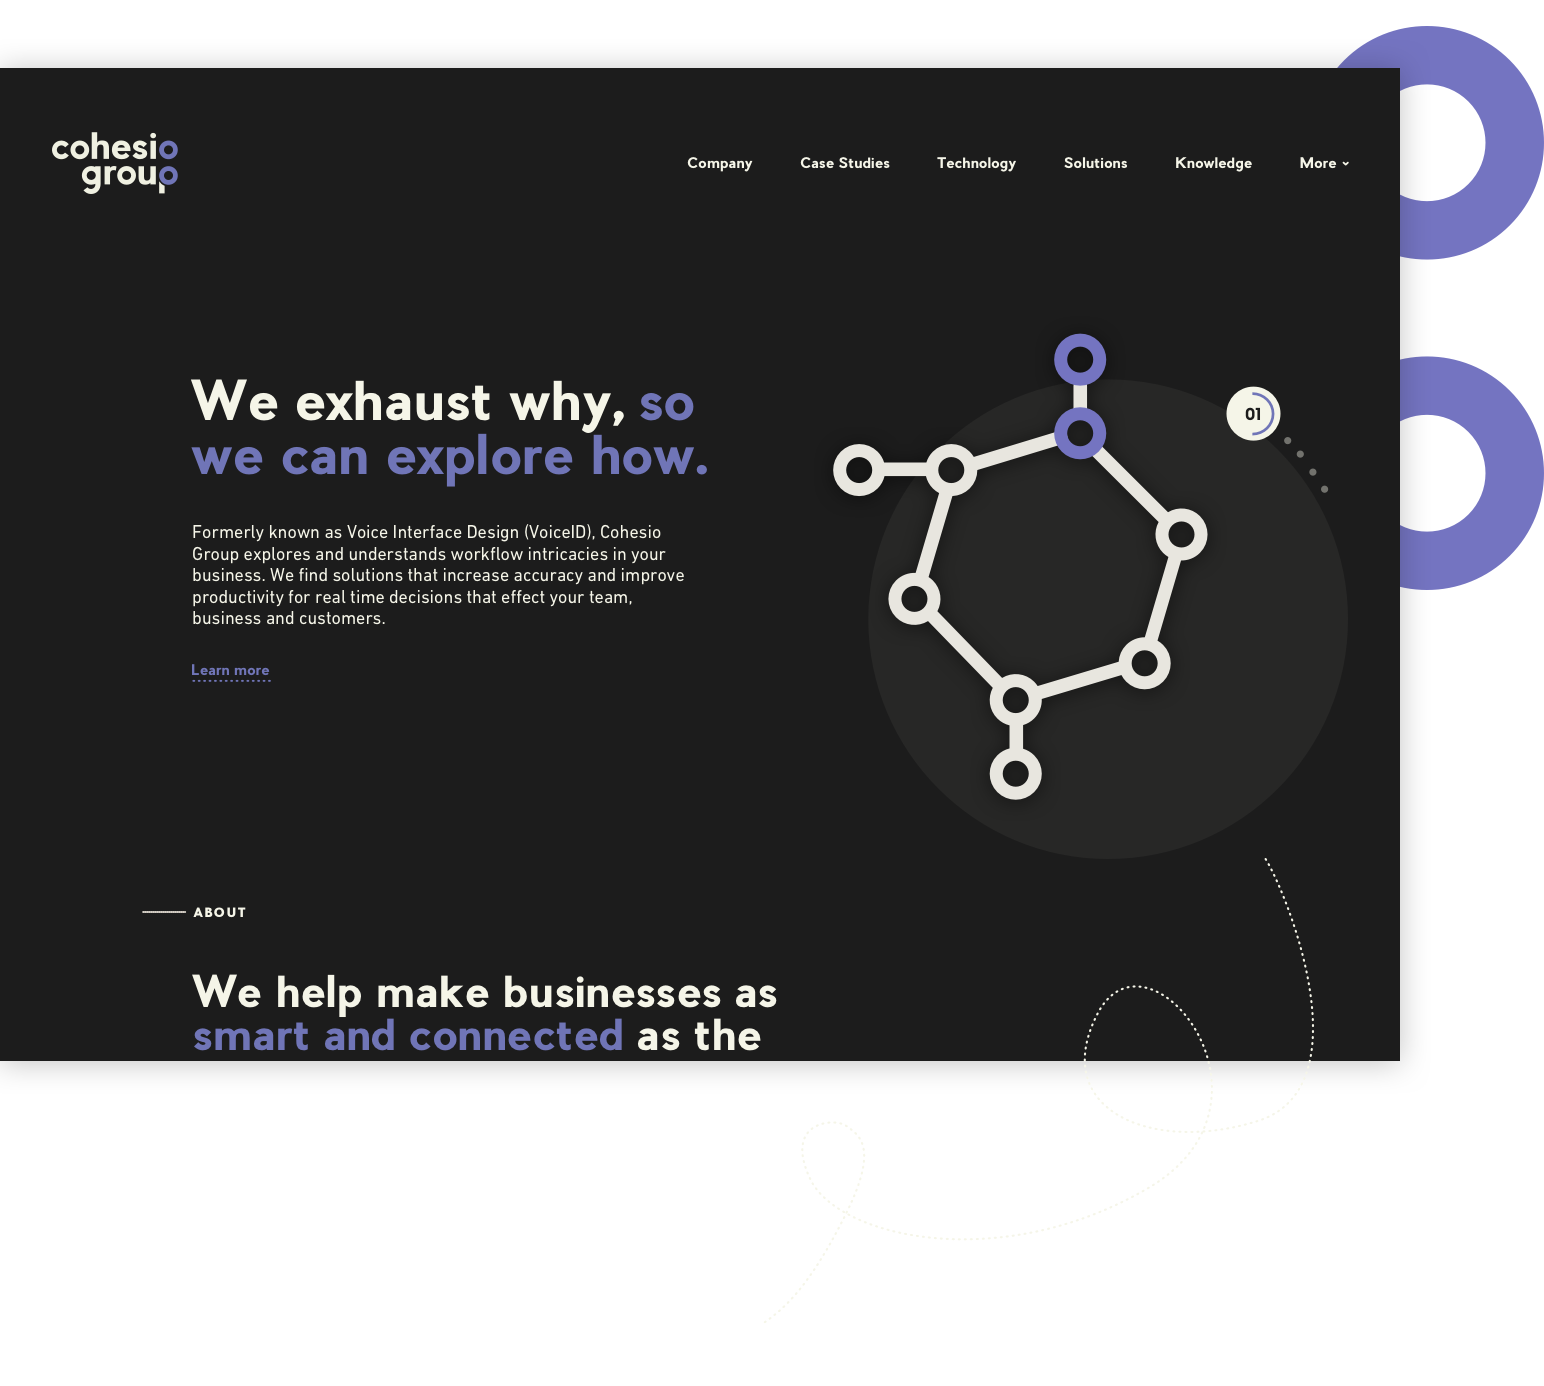 Freshly Launched — Cohesio Group - Introducing the new website for Cohesio Group, an innovative business that works in the technology solutions space within warehousing, supply & logistics and retail management. They leverage their passion for technology and solutions to help companies explore opportunities to better their workflows.